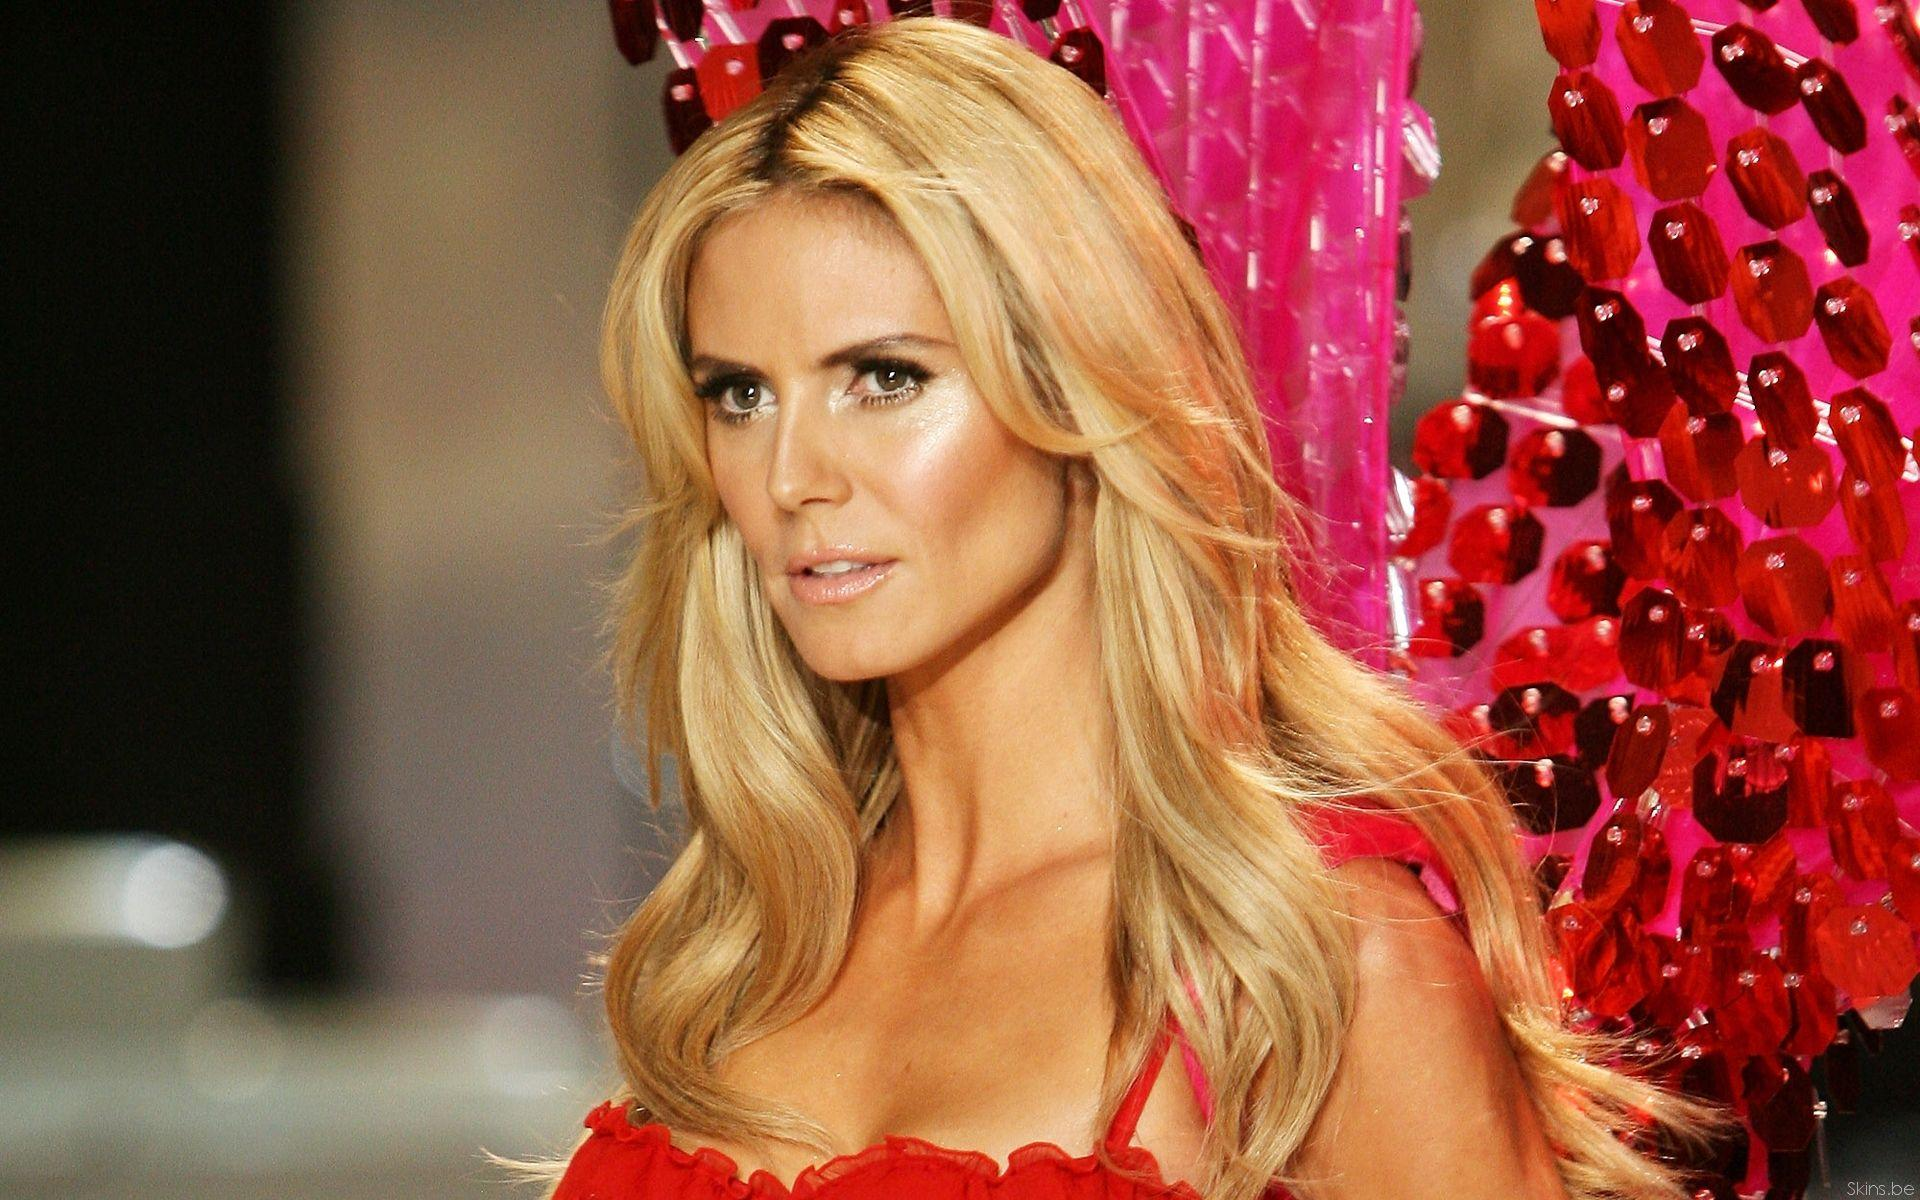 Heidi Klum Full HD Wallpapers and Backgrounds Image